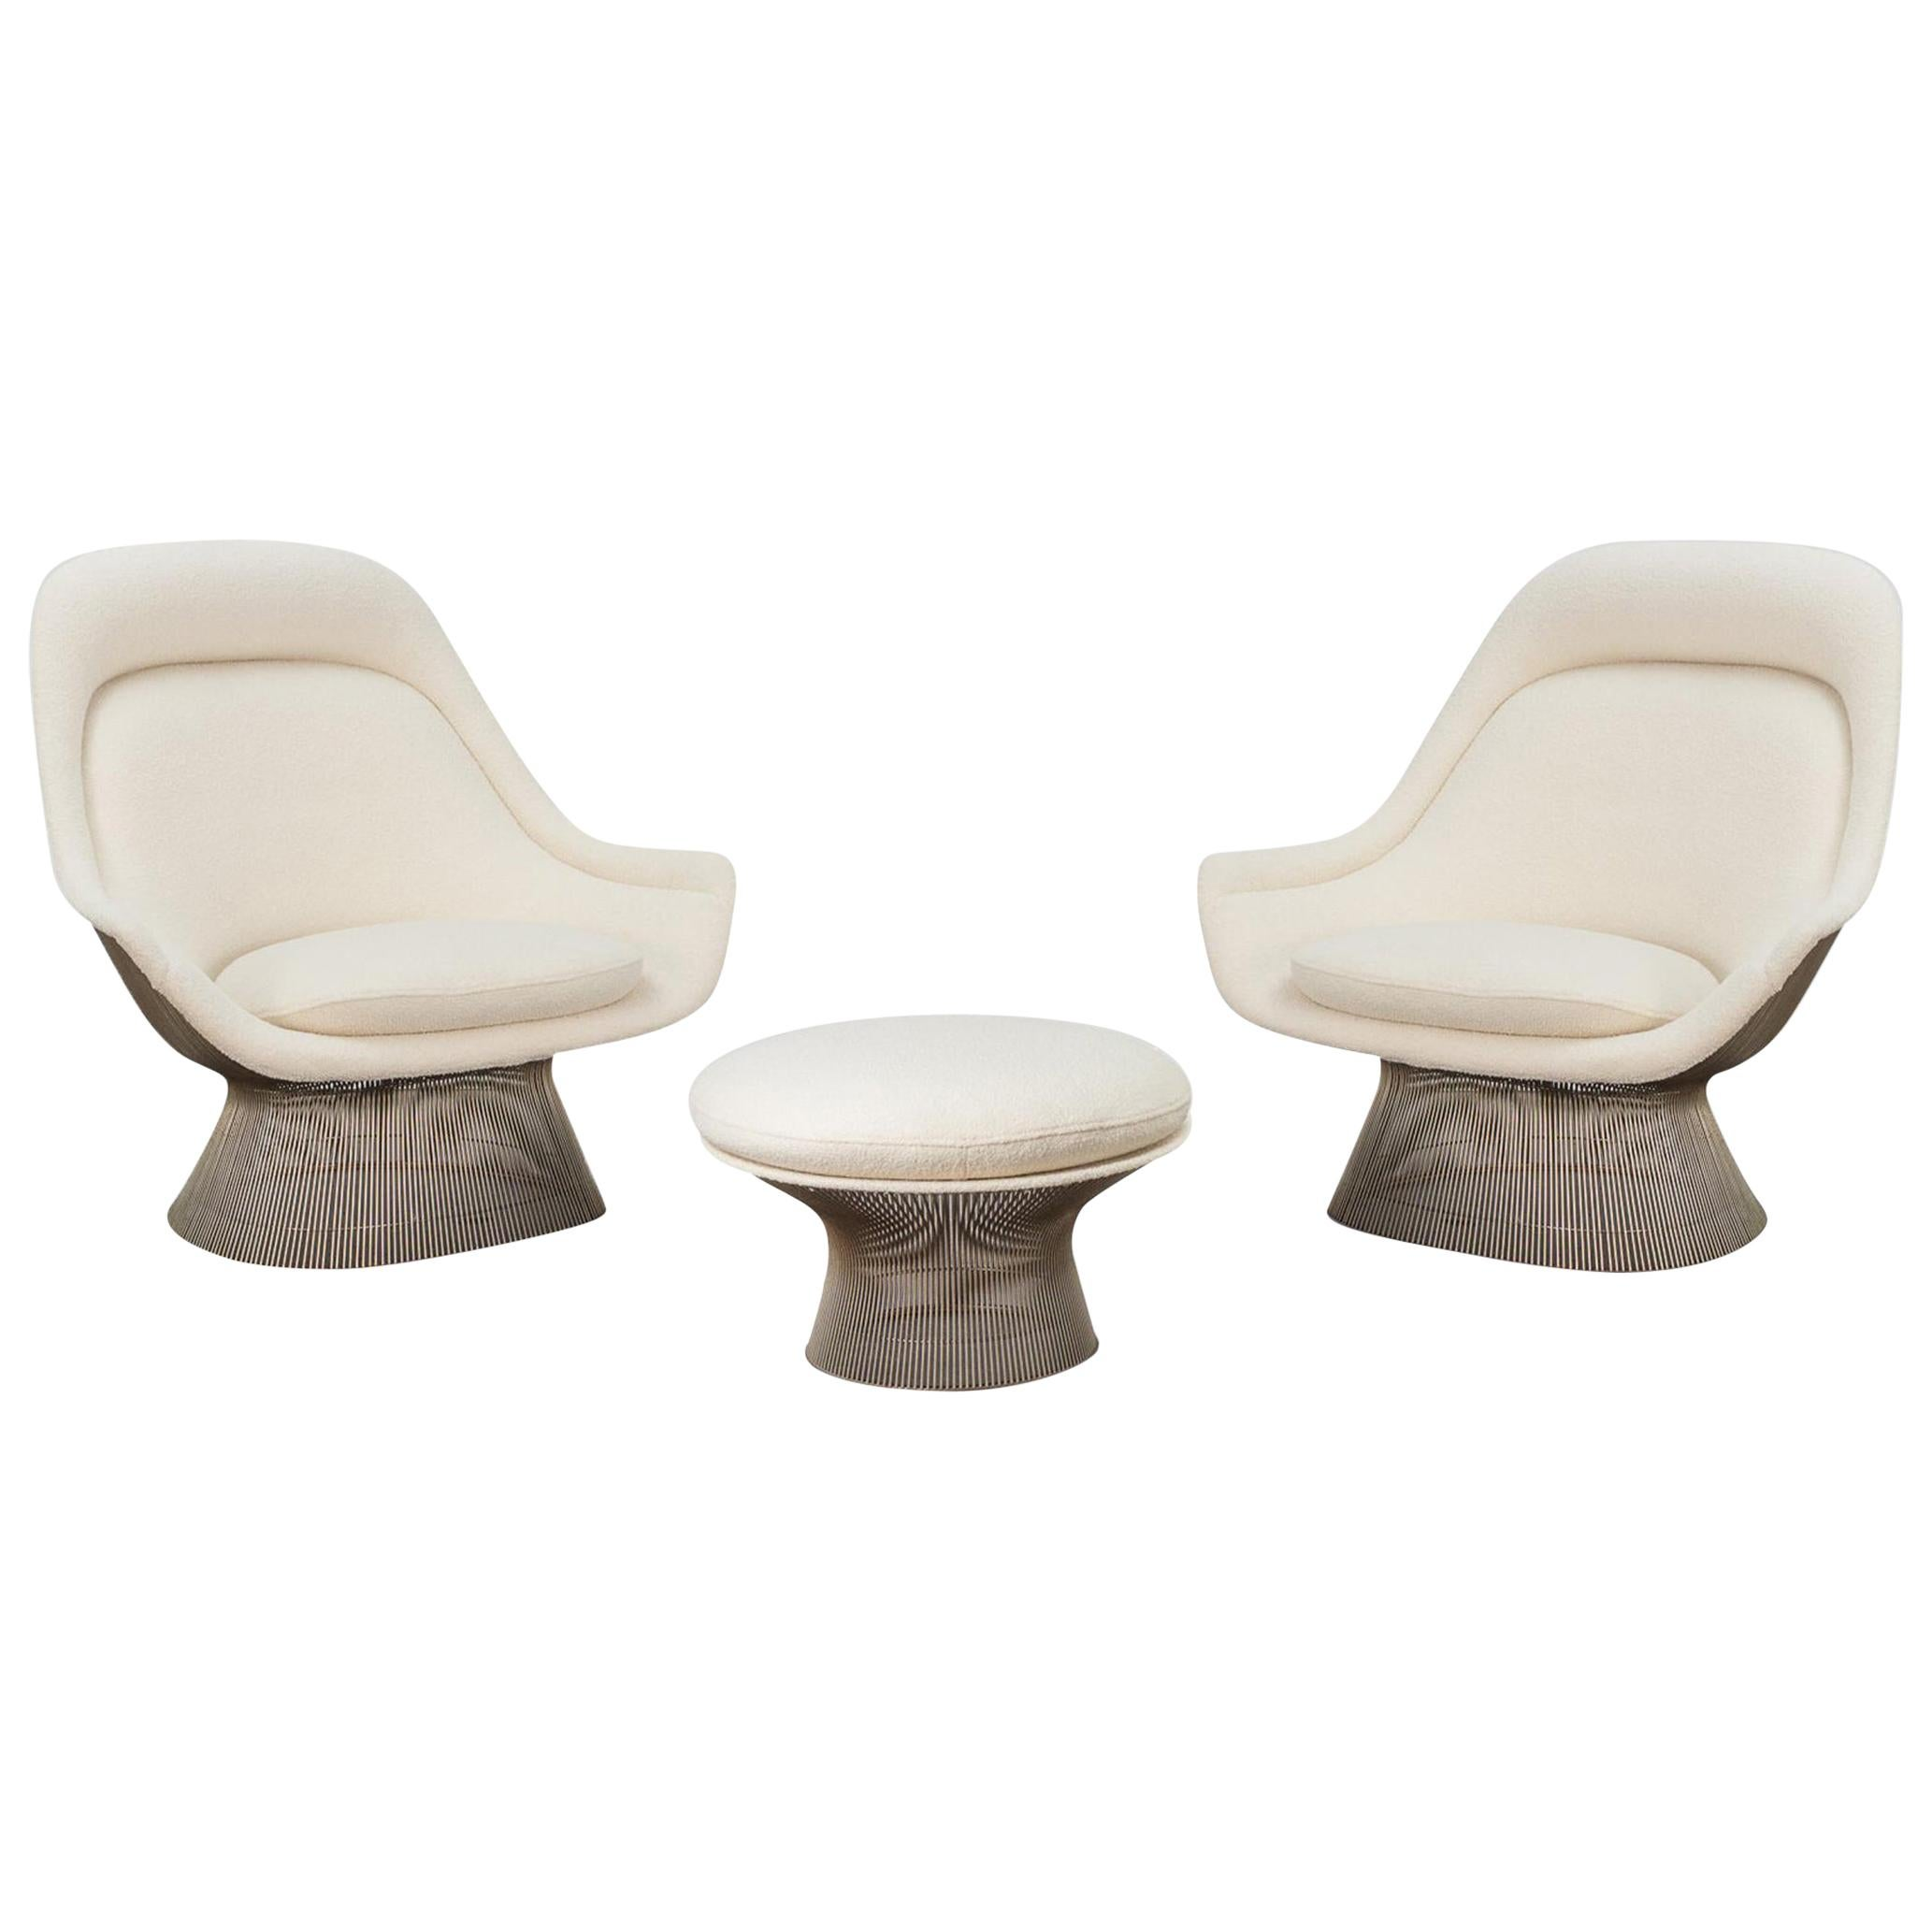 Pair of Warren Platner Easy Lounge Chairs and Ottoman